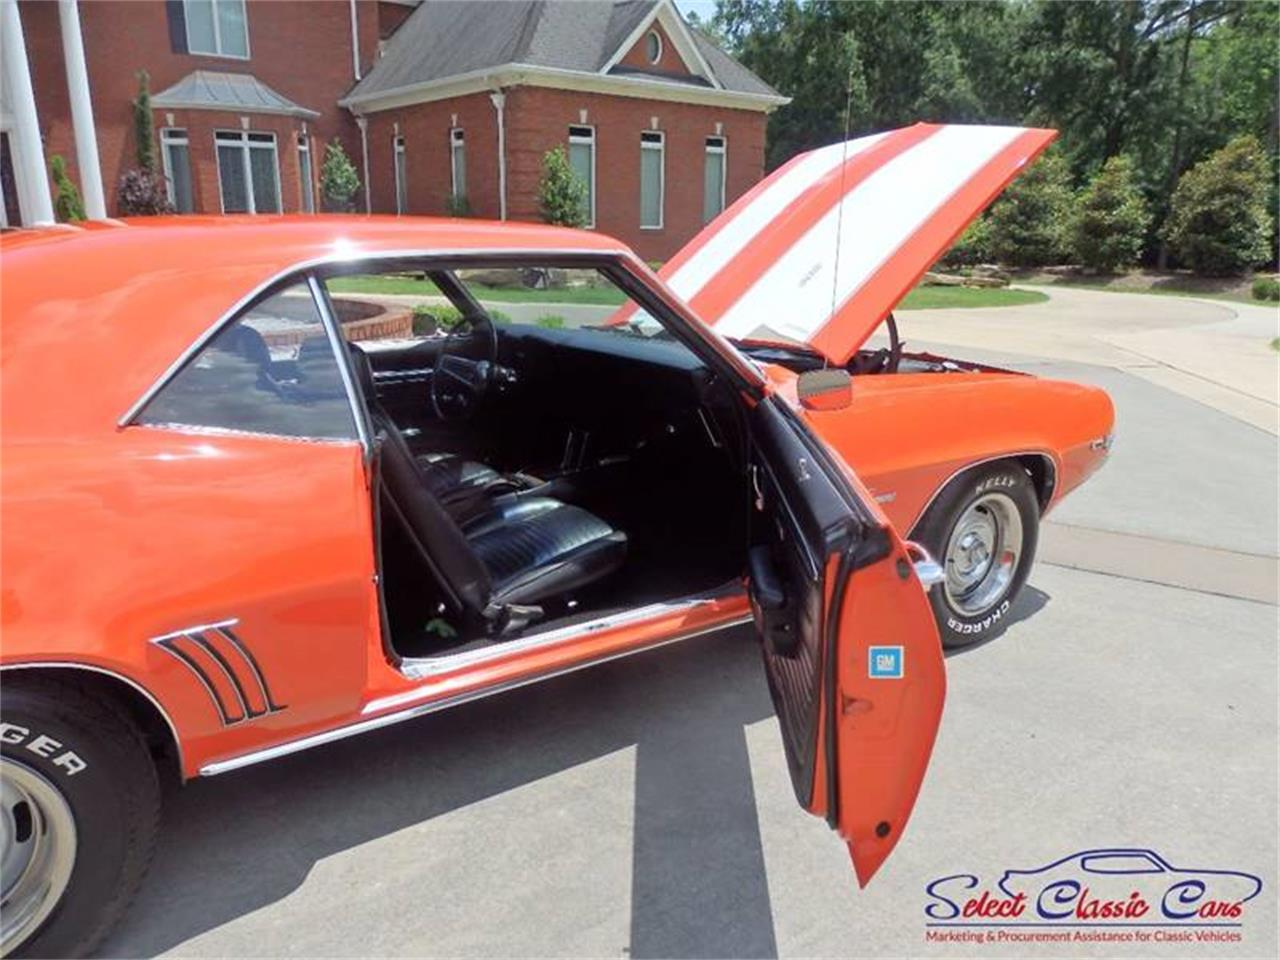 Large Picture of Classic '69 Chevrolet Camaro located in Georgia - $34,500.00 Offered by Select Classic Cars - MG35